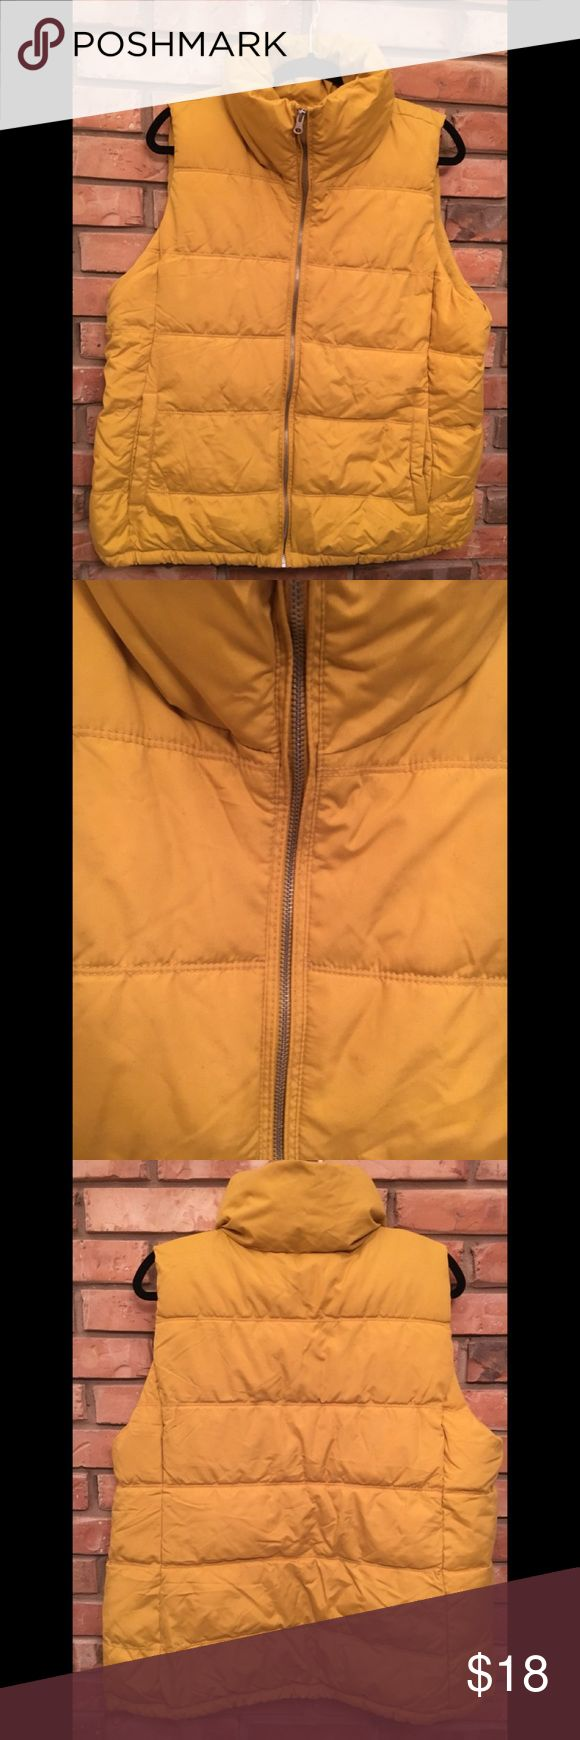 Puffer Vest Mustard yellow puffer vest. NWOT. Too big for me. Silver/grey zipper. Two functional front pockets. Cozy lining inside vest and inside pockets. Old Navy Jackets & Coats Vests